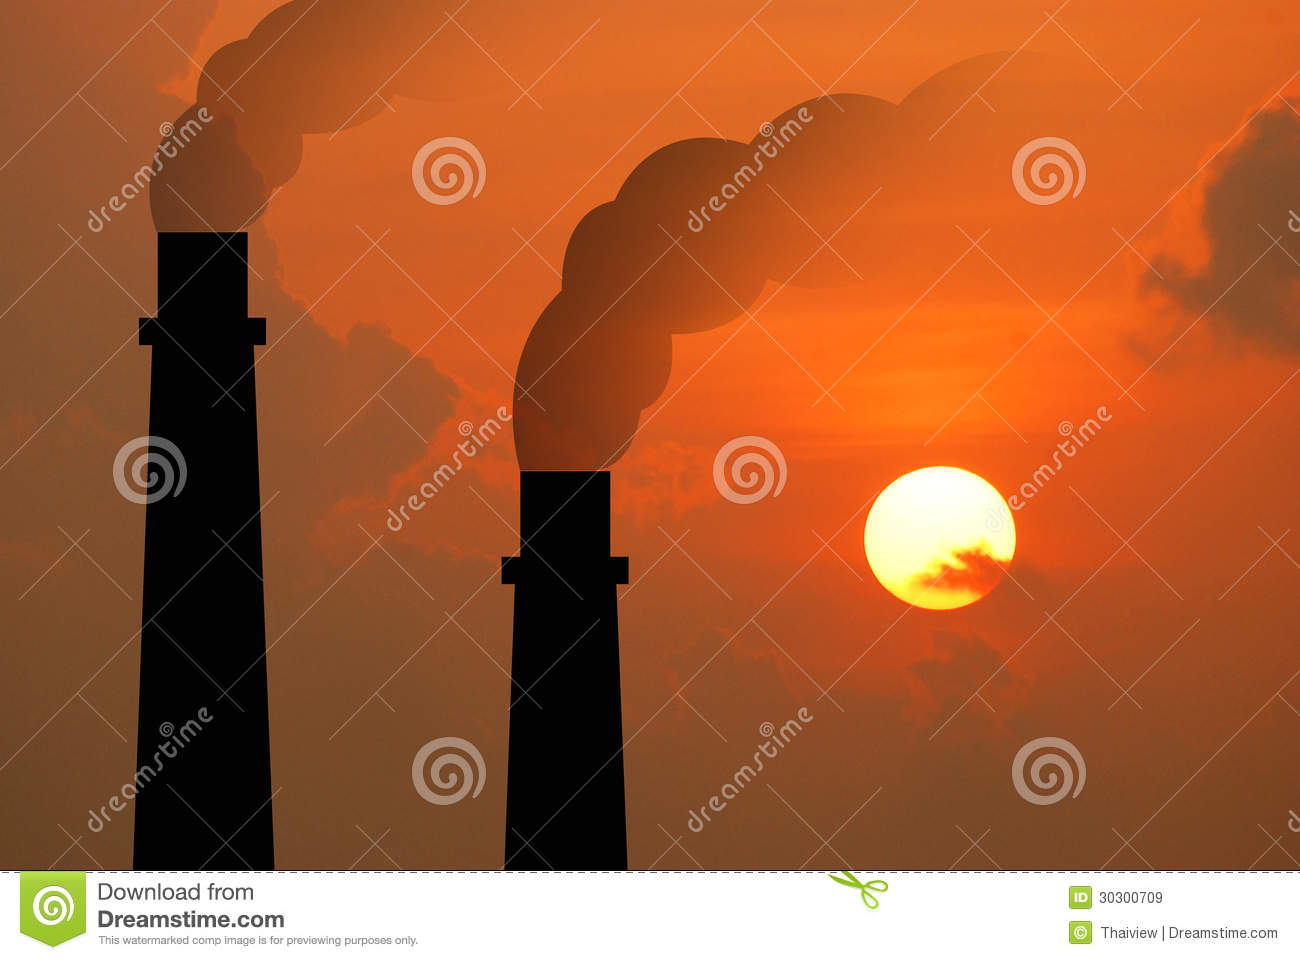 Power plant powerhouse electric industry industrial business factory background for design